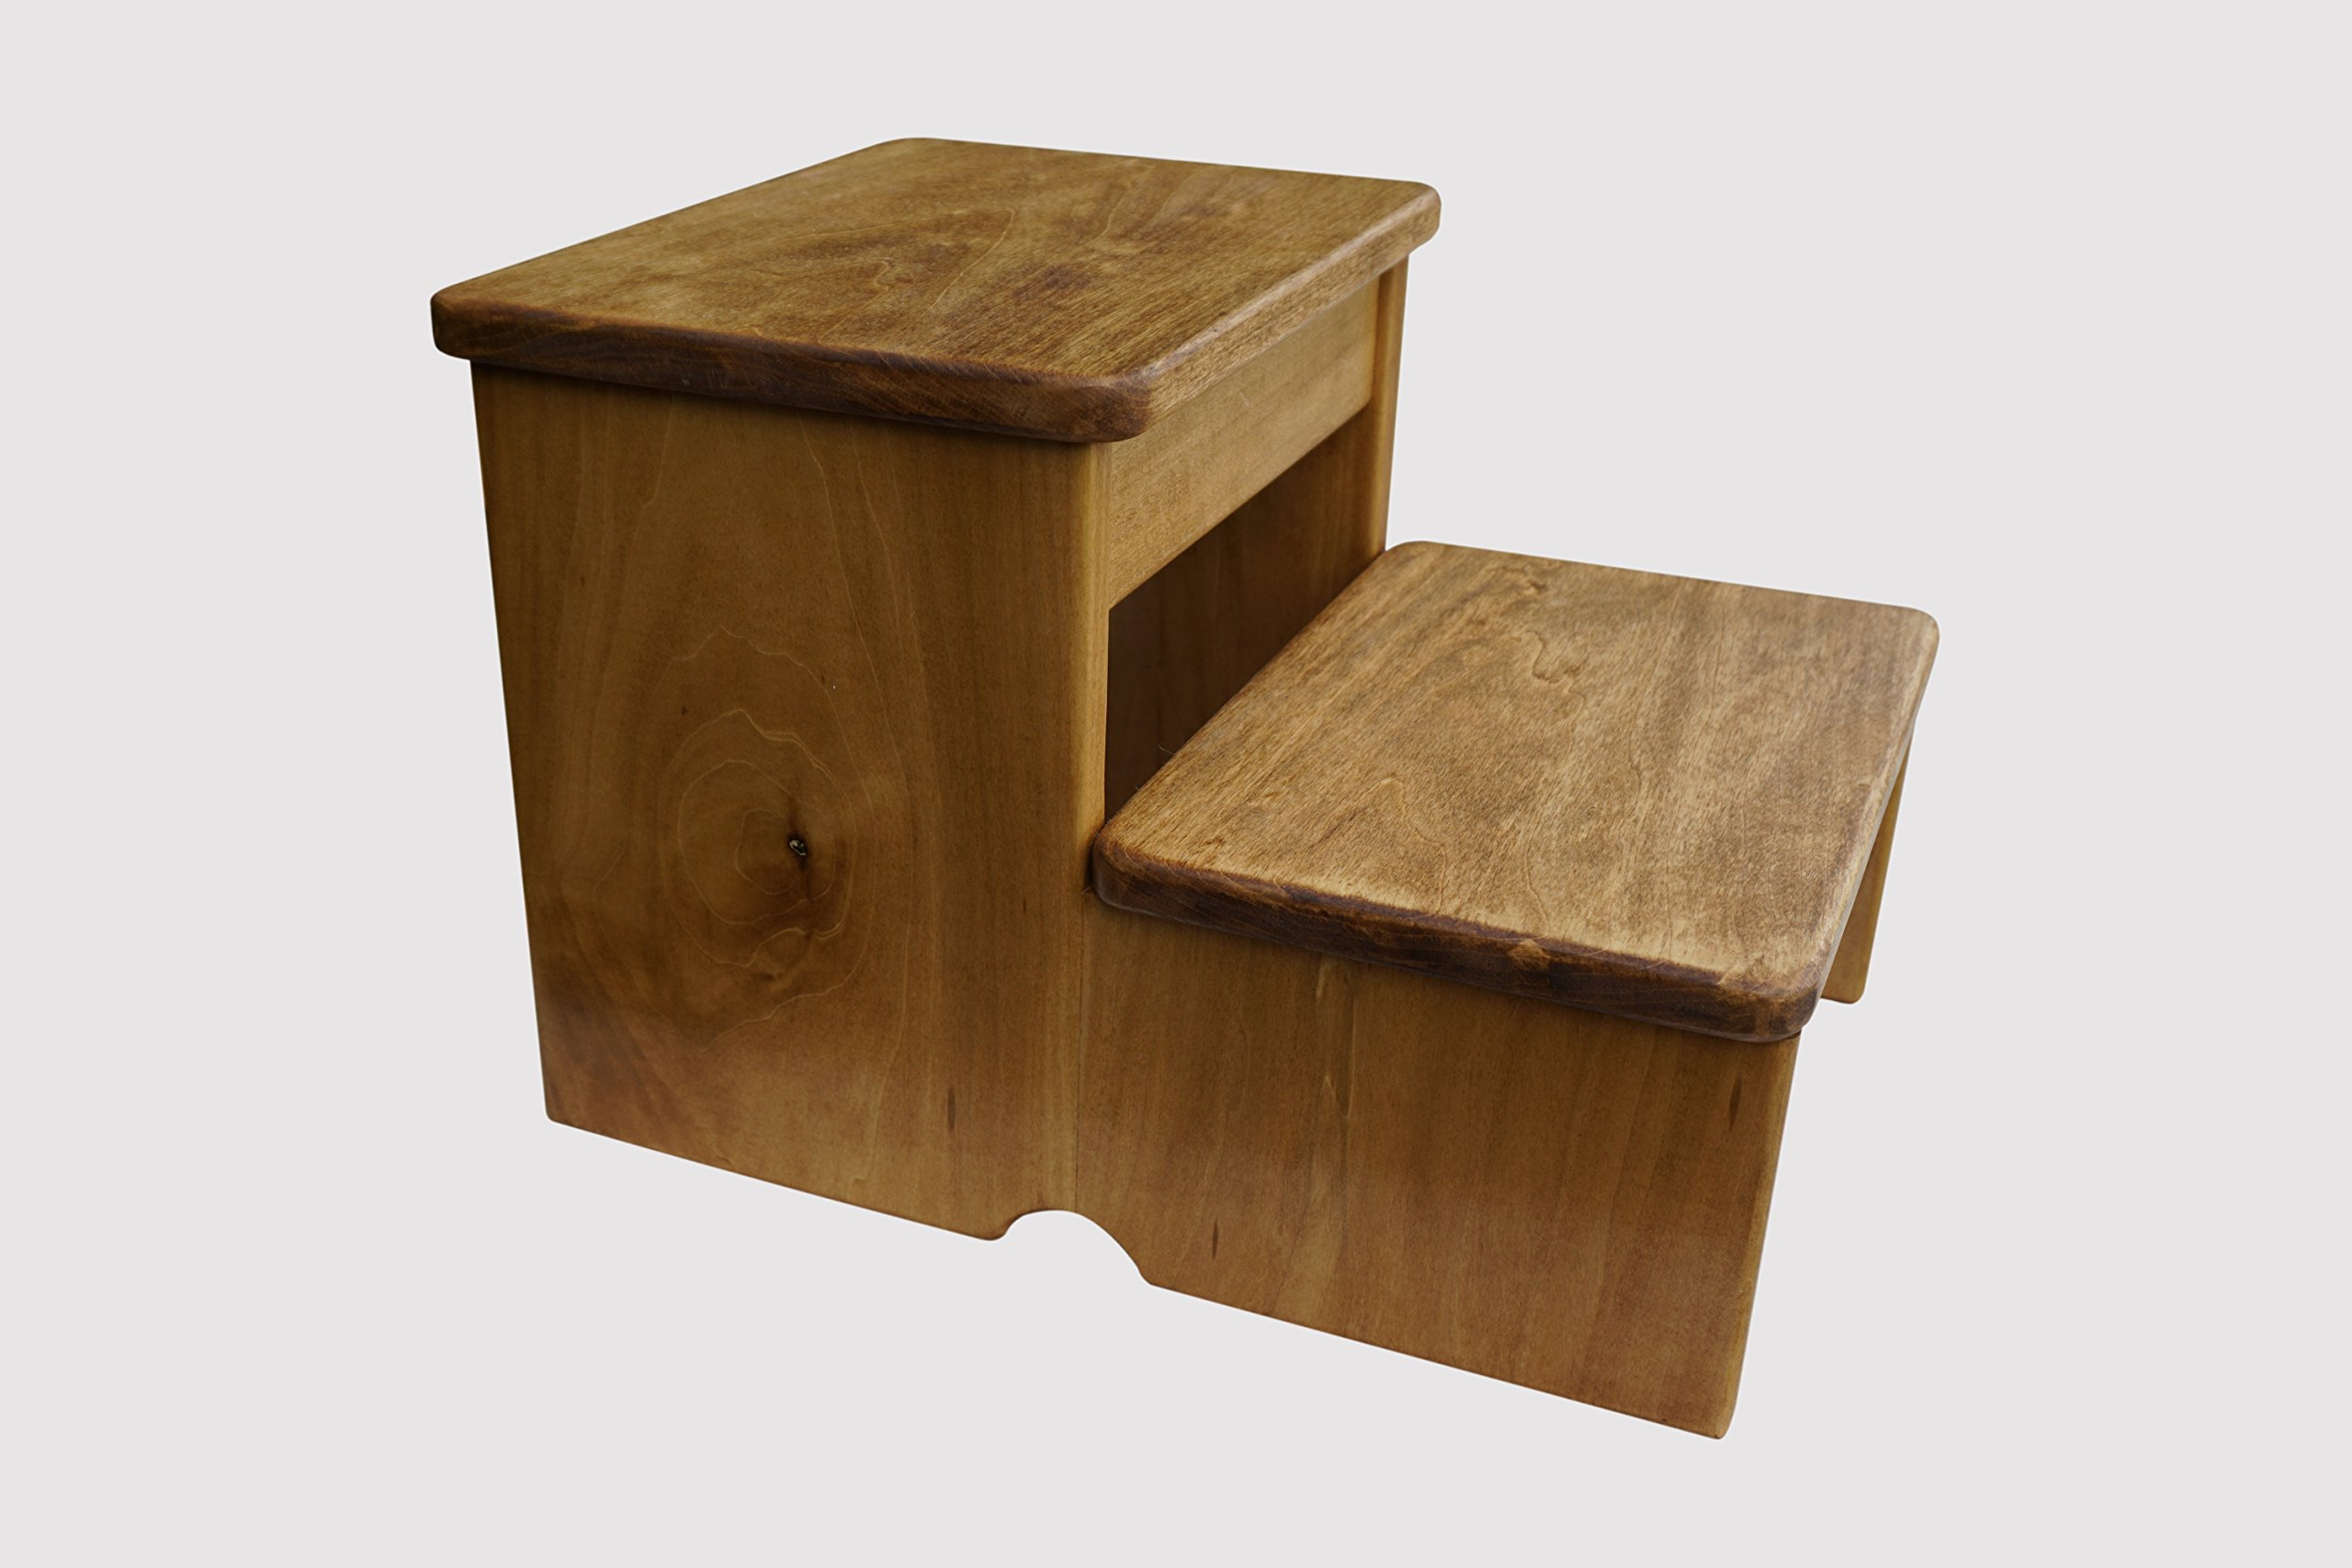 Standard 2-Step Stool (Made in the USA) (Maple Stain)